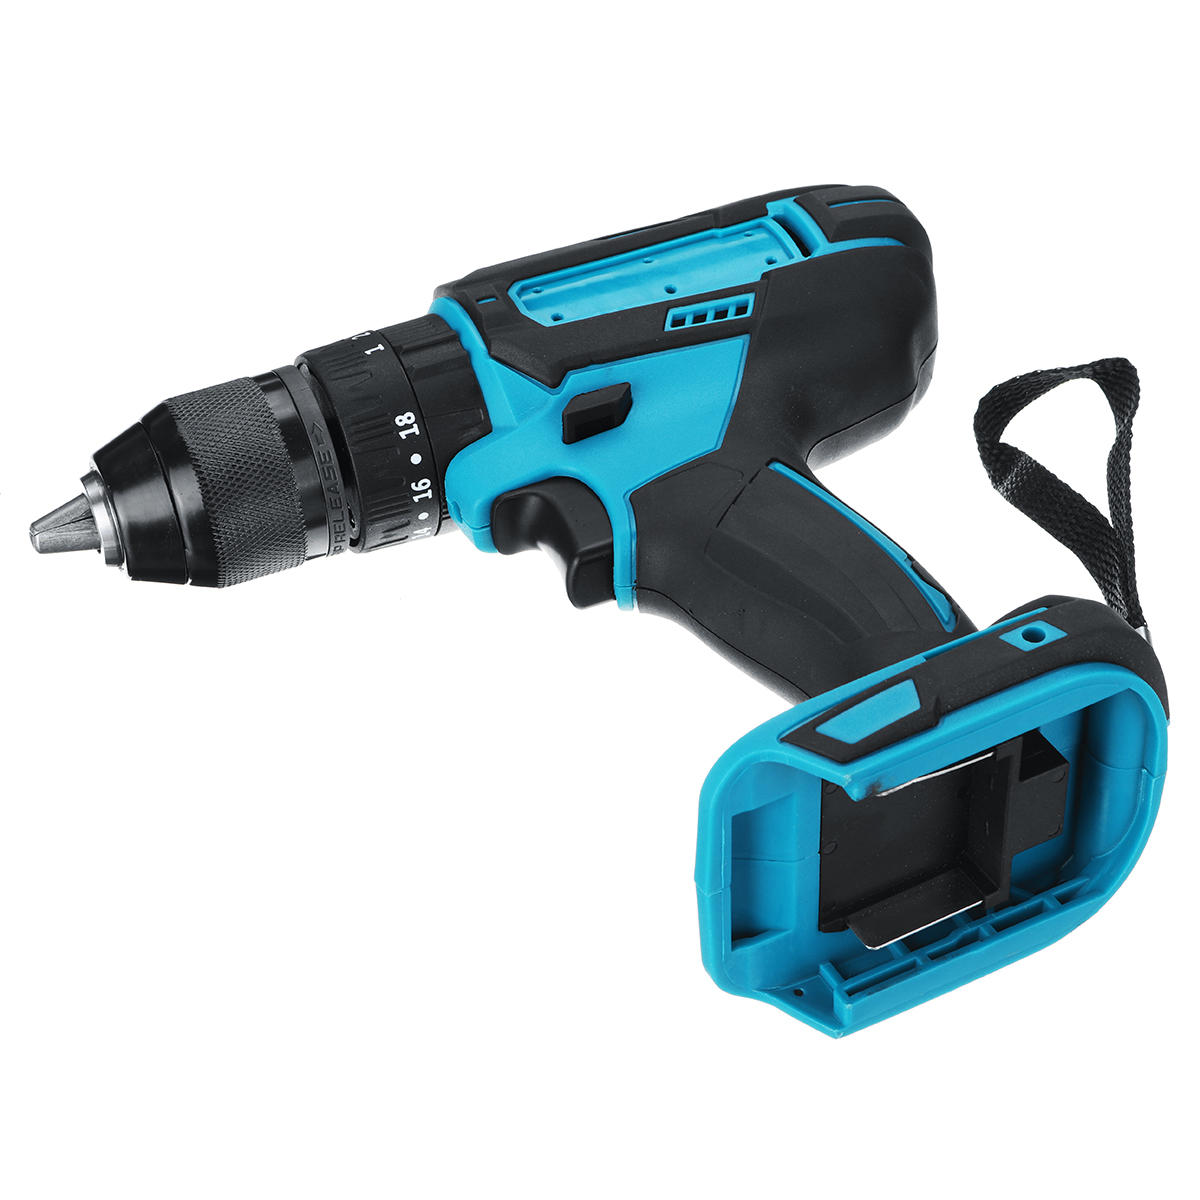 10mm Chuck Brushless Impact Drill 350N.m Cordless Electric Drill For Makita 18V Battery 4000RPM LED Light Power Drills - 7